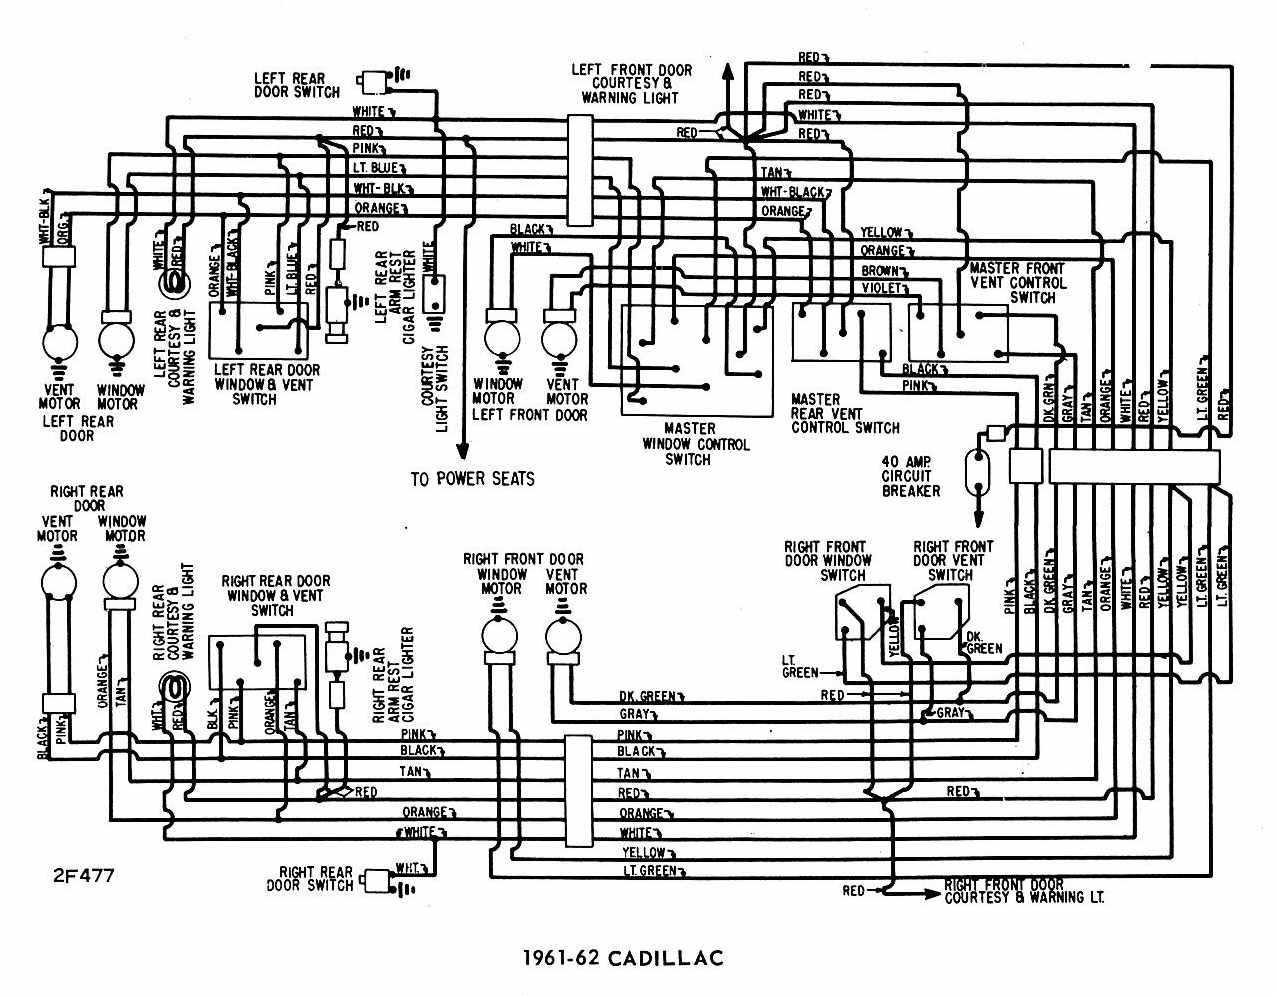 2004 Cadillac Deville Fuse Box Diagram 97 Simple Guide About Wiring Sts In The Back Seat 1997